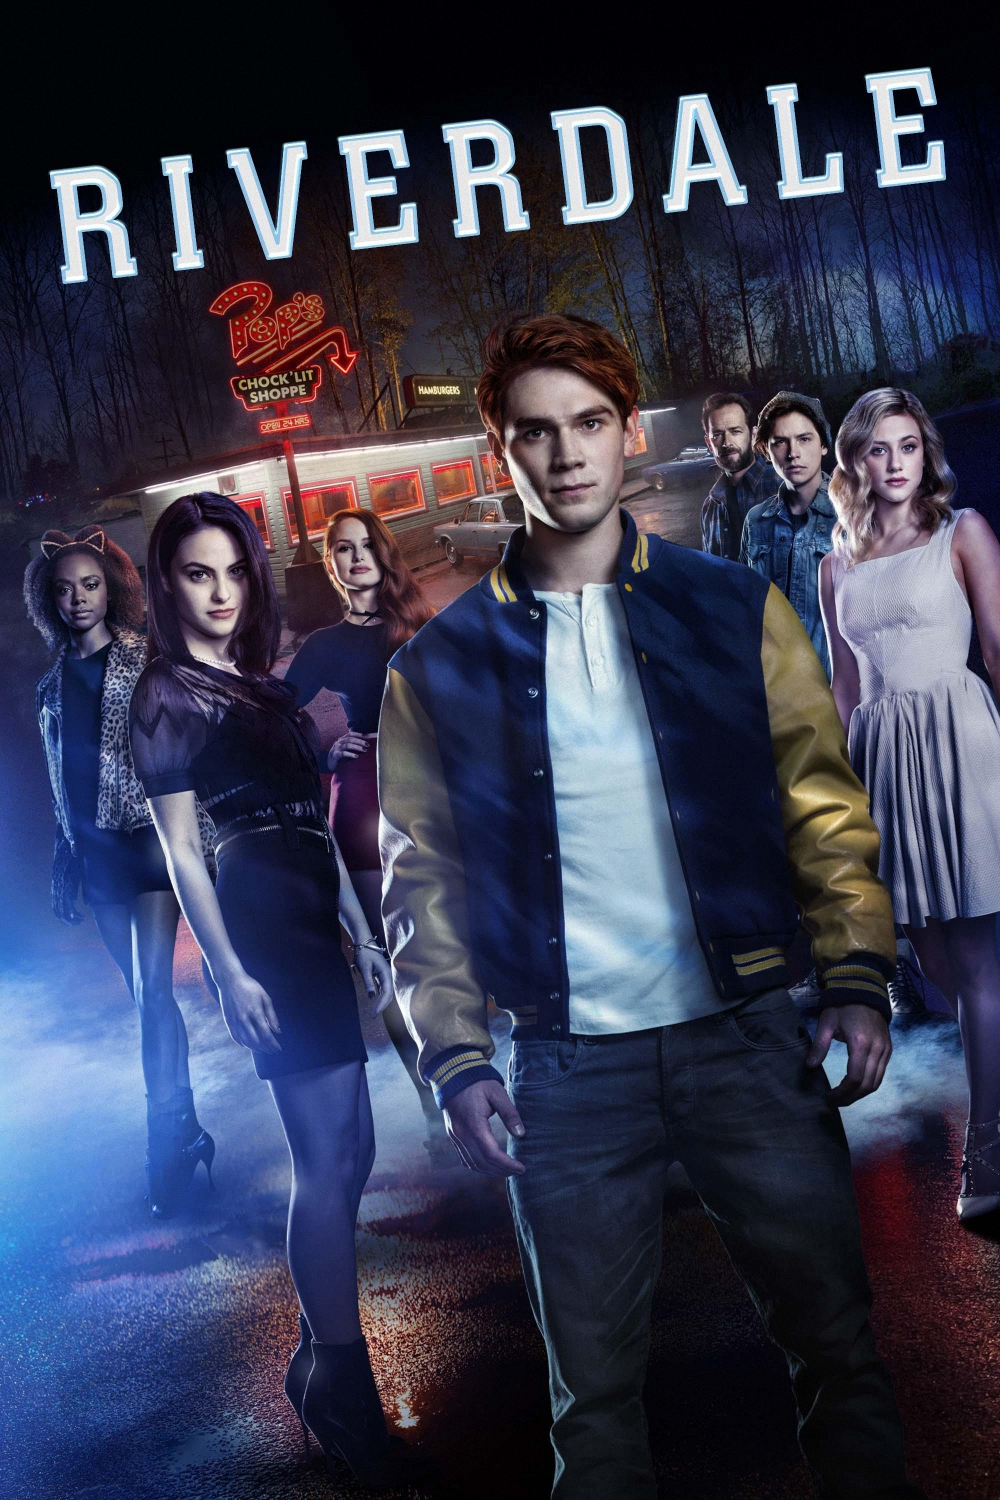 Riverdale|T-I|E10|720p|x265|L@TiN0|MG|